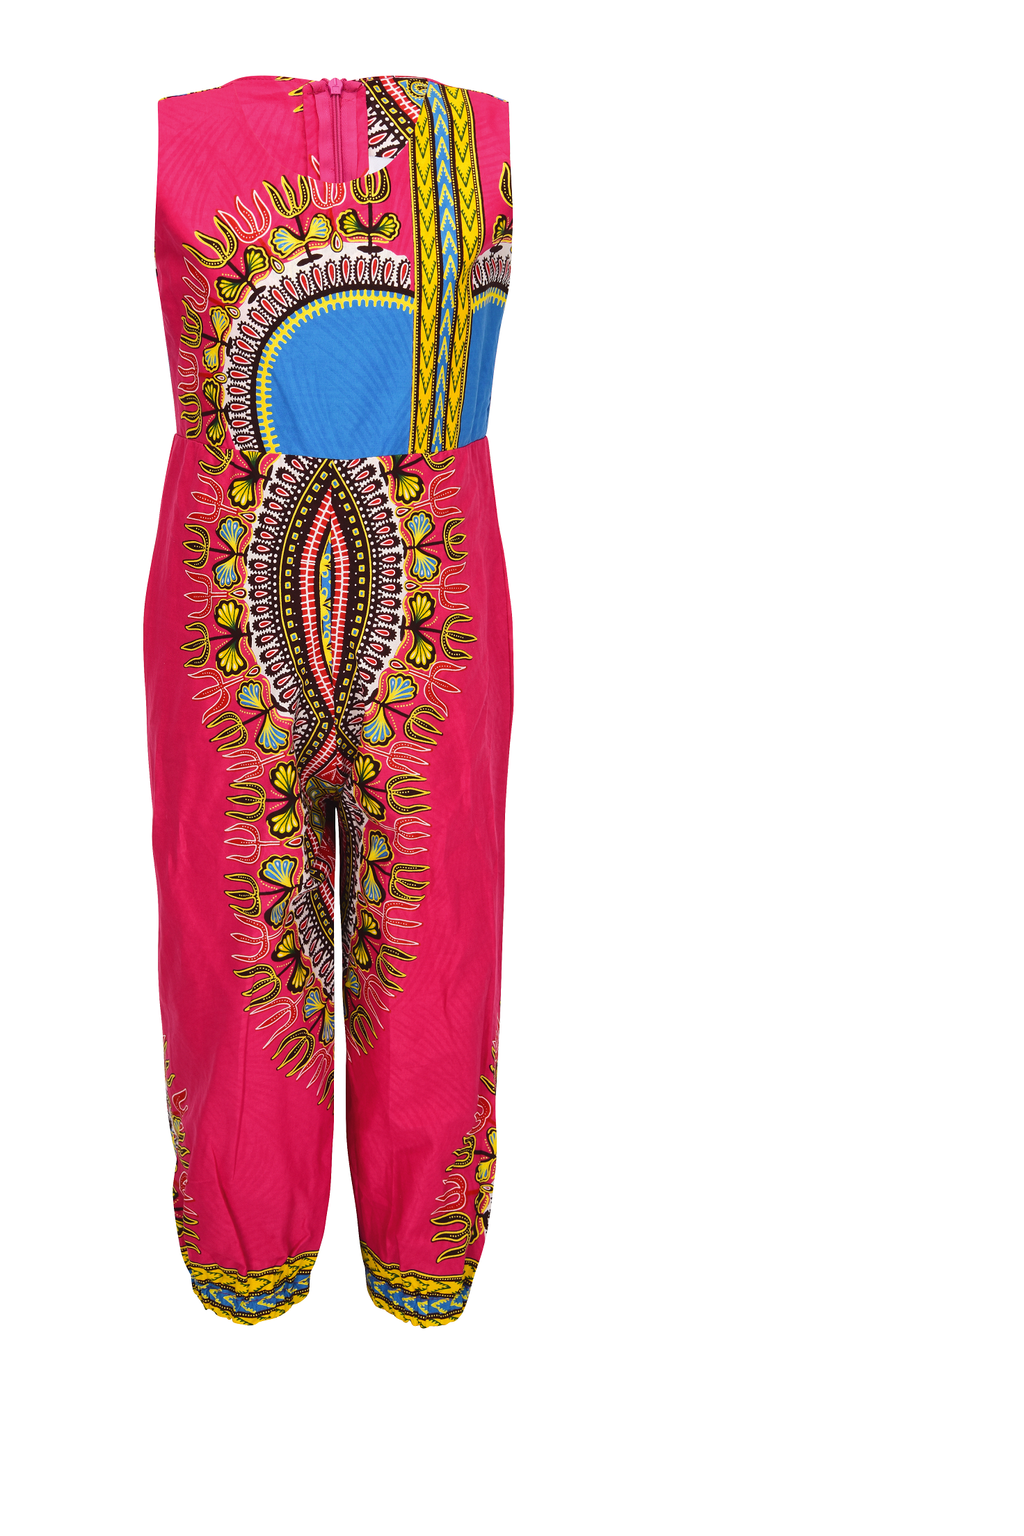 Owu Dashiki jumpsuit for girls - yalinat